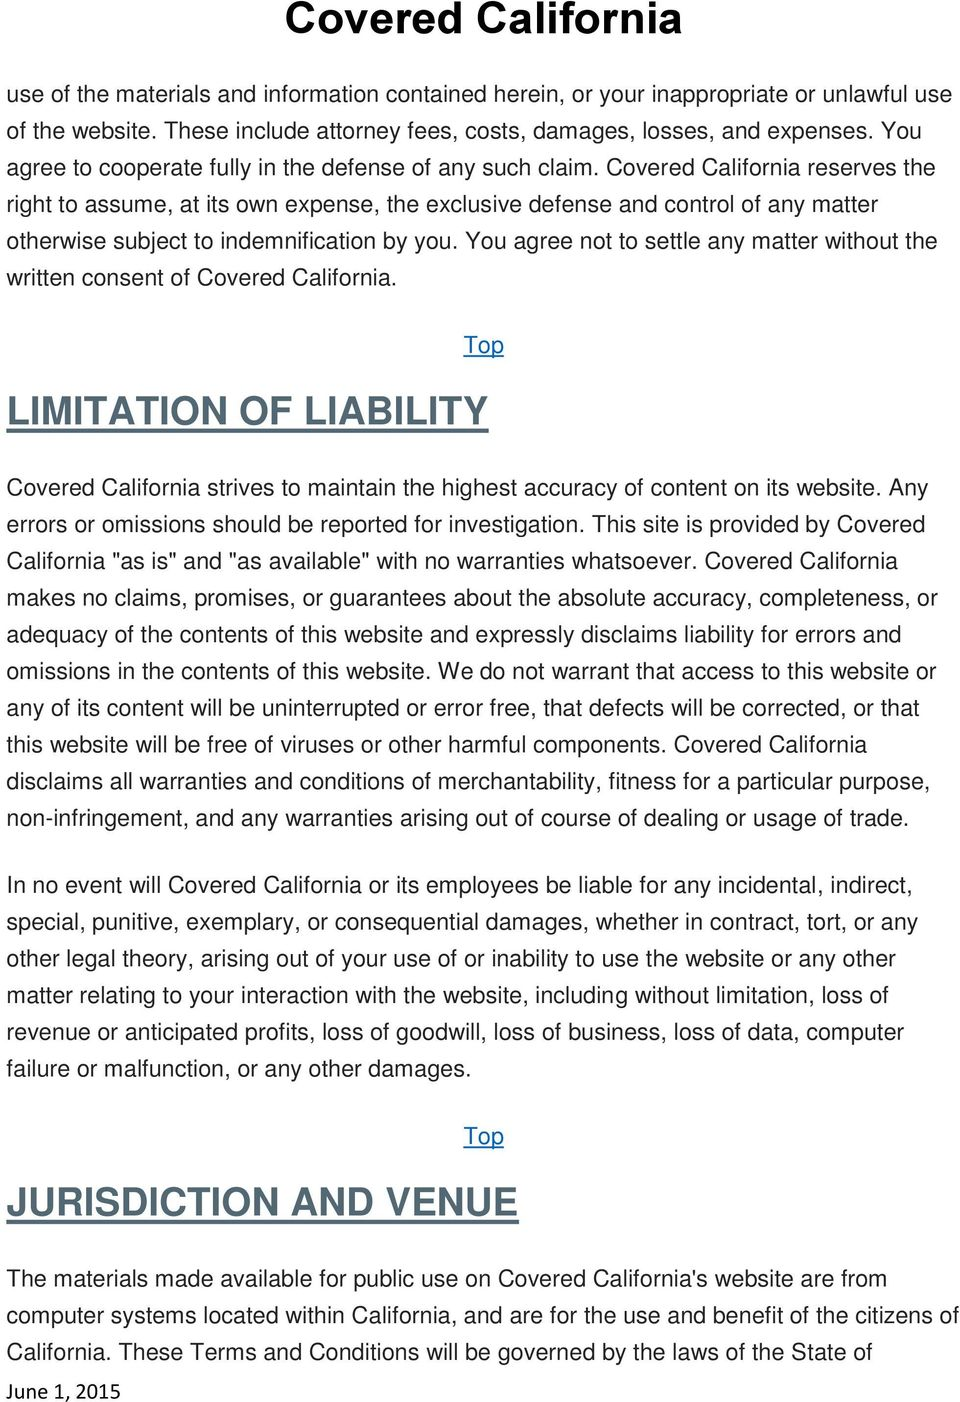 Covered California reserves the right to assume, at its own expense, the exclusive defense and control of any matter otherwise subject to indemnification by you.